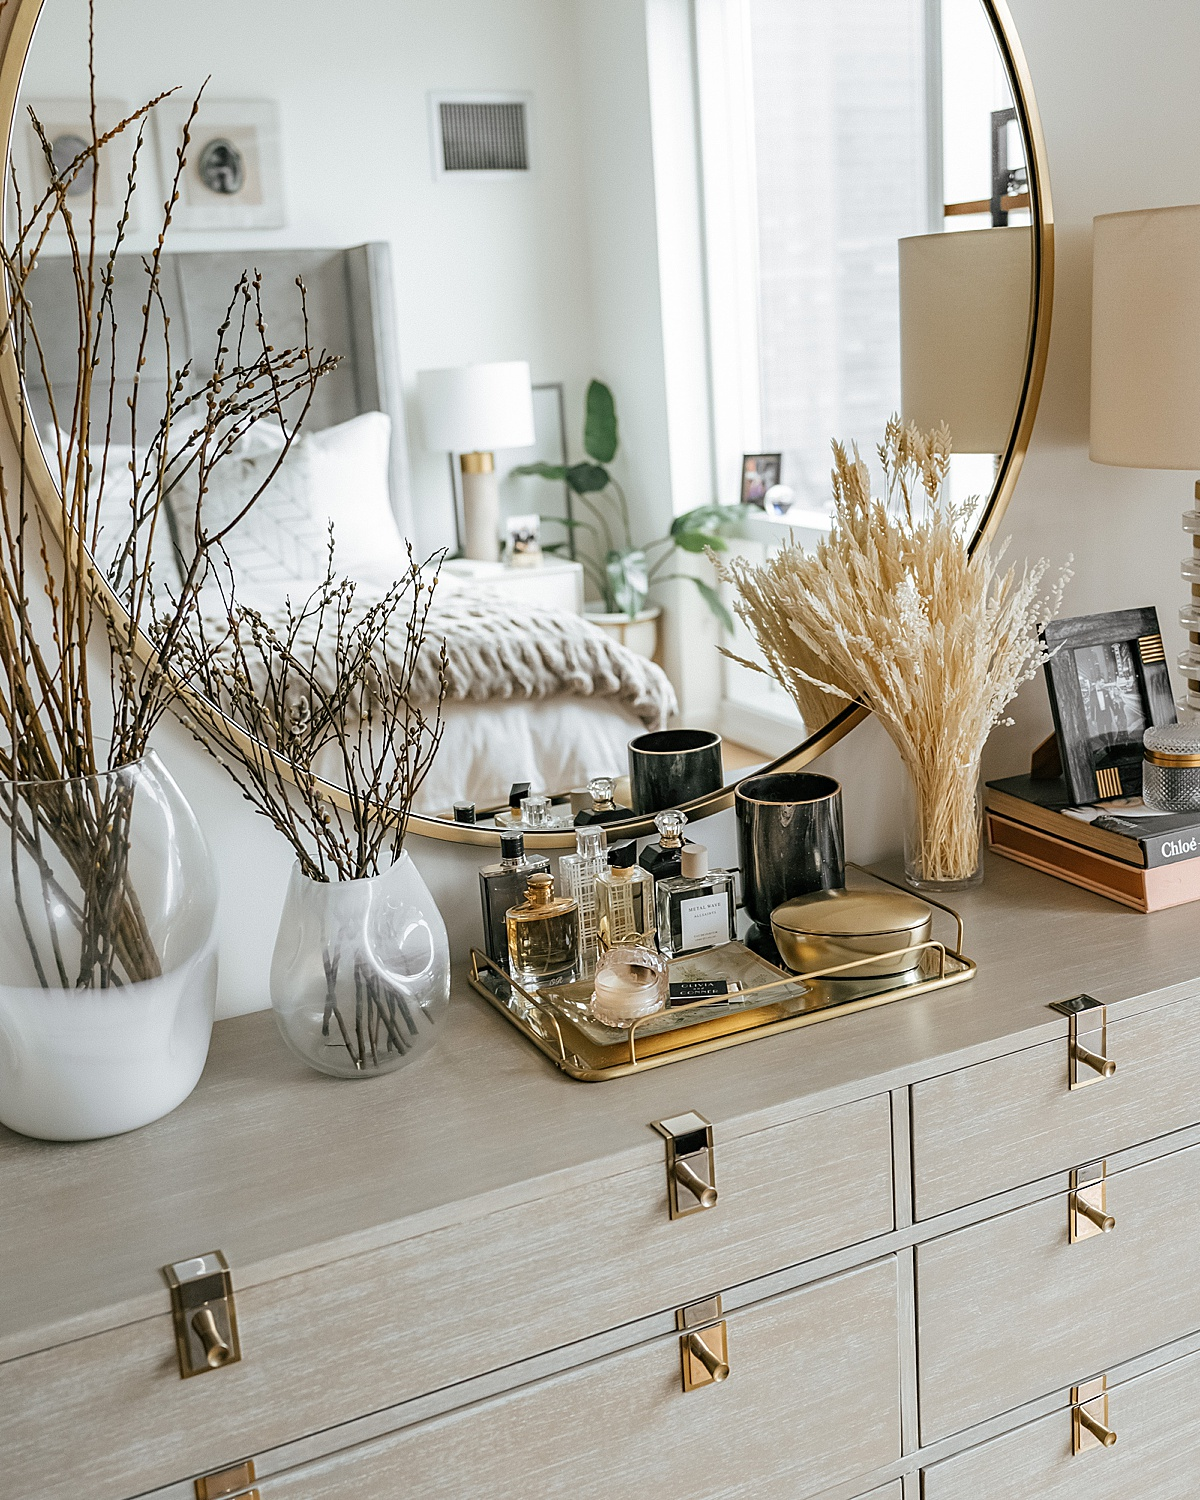 Brooklinen, nyc apartment, best sheets, olivia rink bedroom, olivia rink apartment, olivia rink bedroom, brooklinen sheets, affordable sheets, new york life, new york apartment, nyc living, west elm, kathy kuo home, home decor, bedroom decor, spring branches,